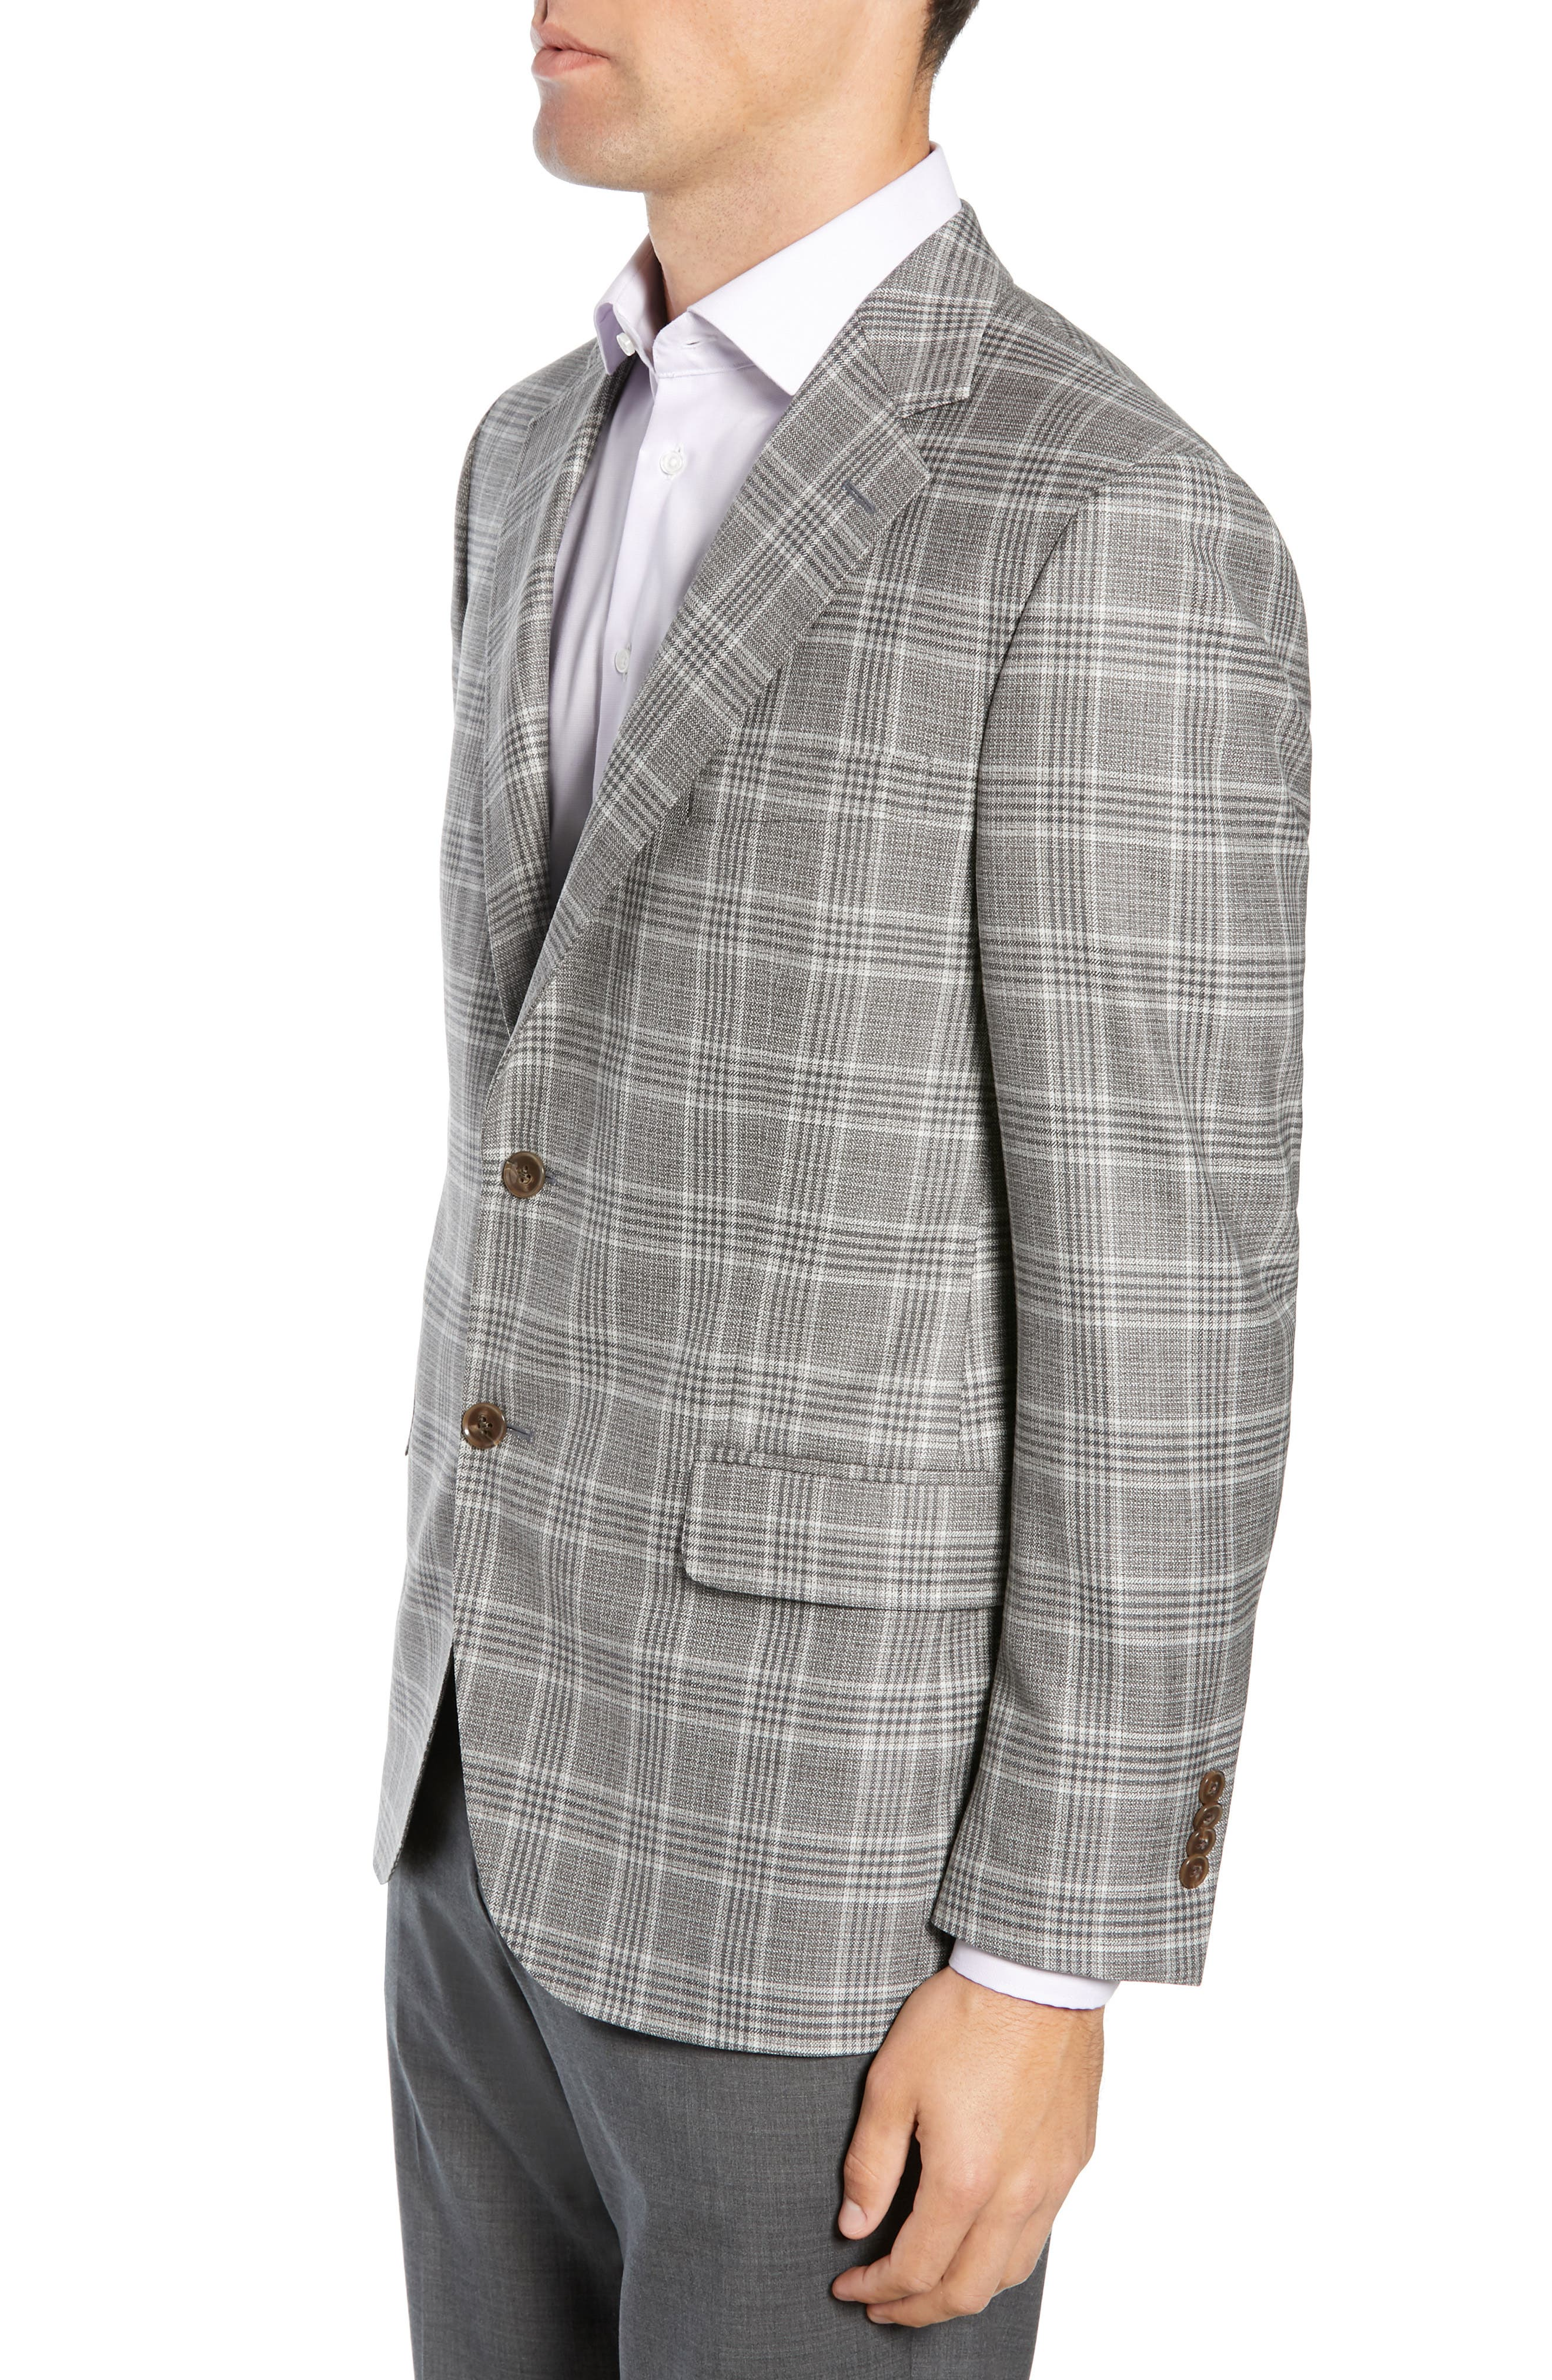 PETER MILLAR, Hyperlight Classic Fit Plaid Wool Sport Coat, Alternate thumbnail 3, color, GREY